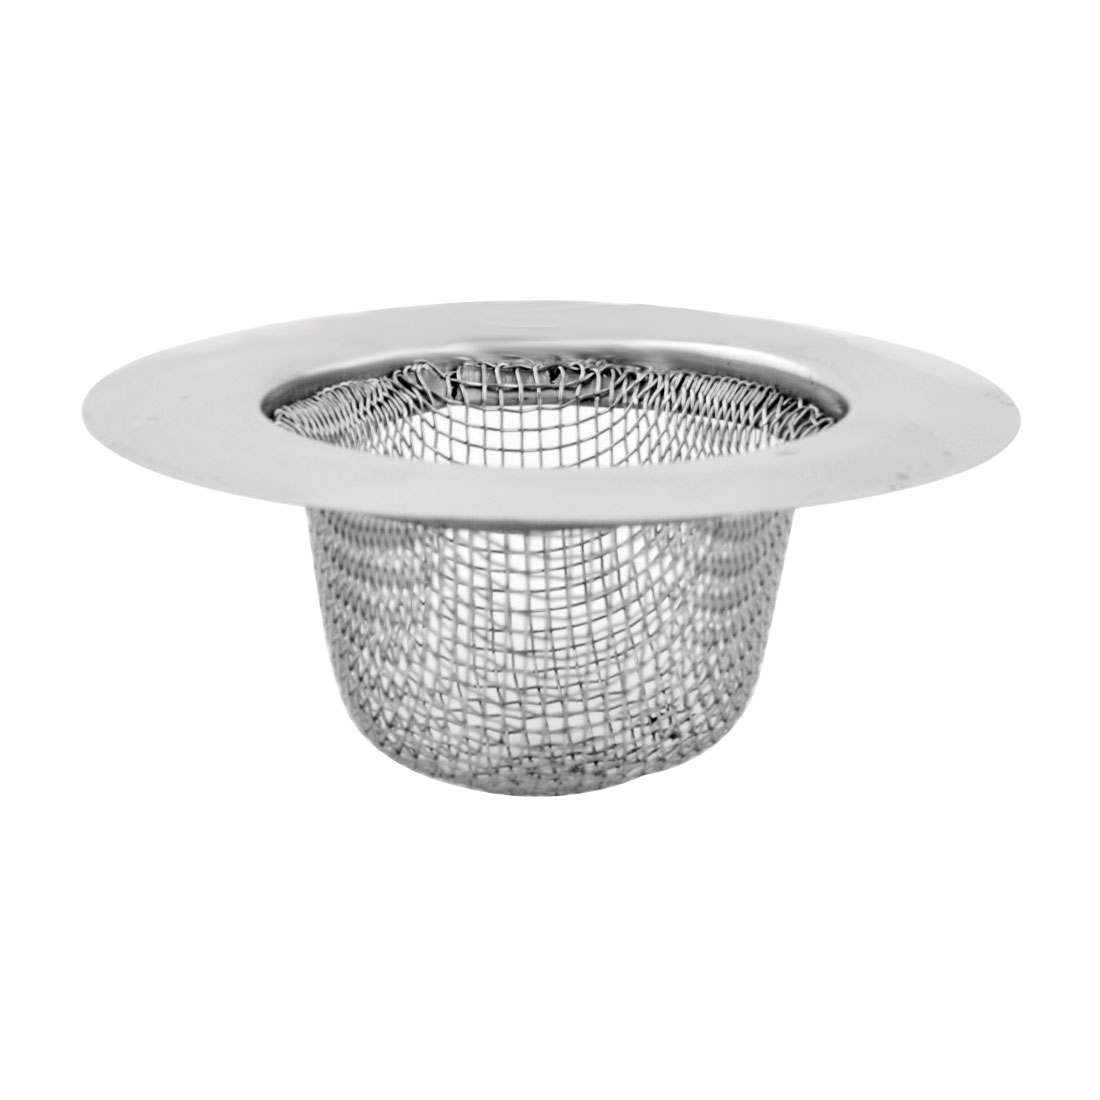 Household Kitchen Stainless Steel Food Stopper Water Sink Basin Strainer Silver Tone